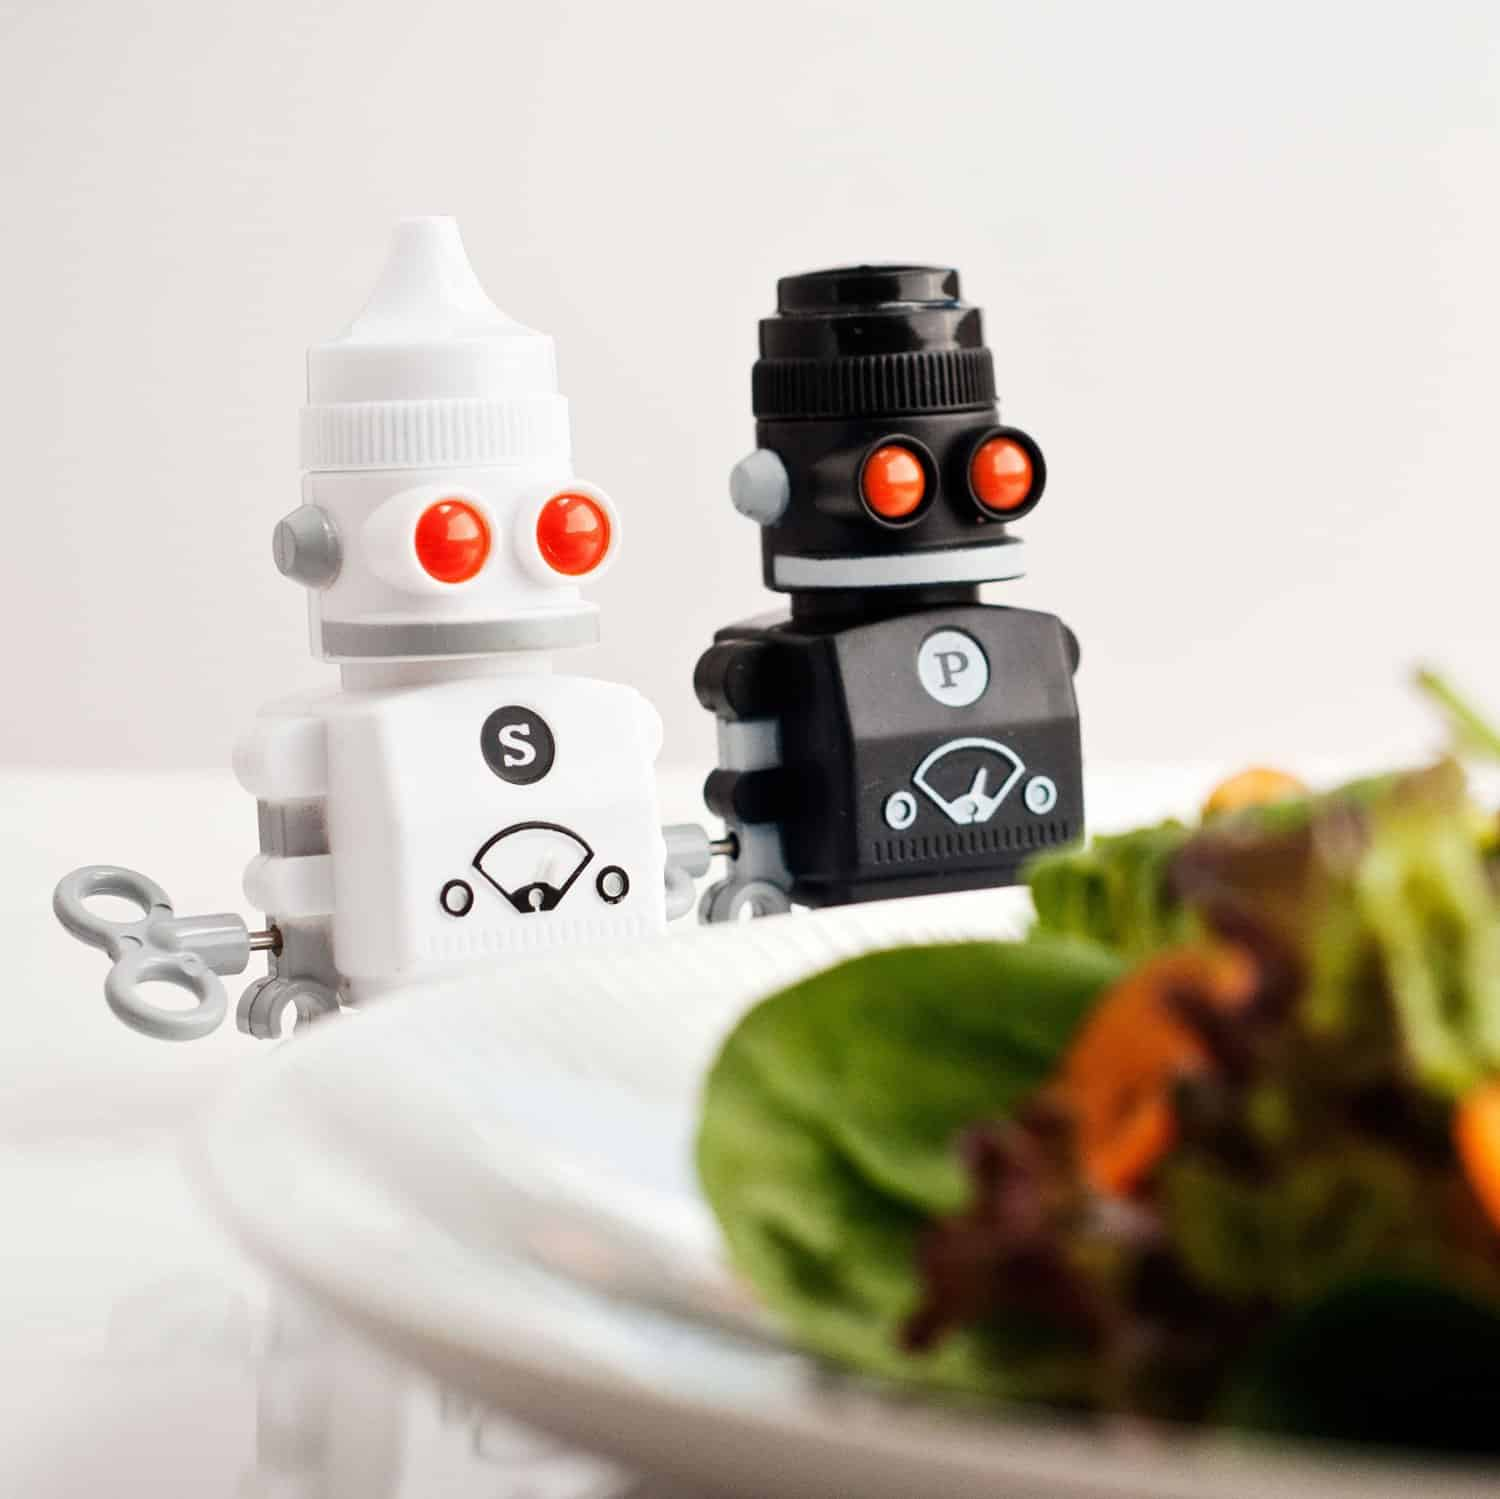 Suck uk salt and pepper bots noveltystreet Salt and pepper robots